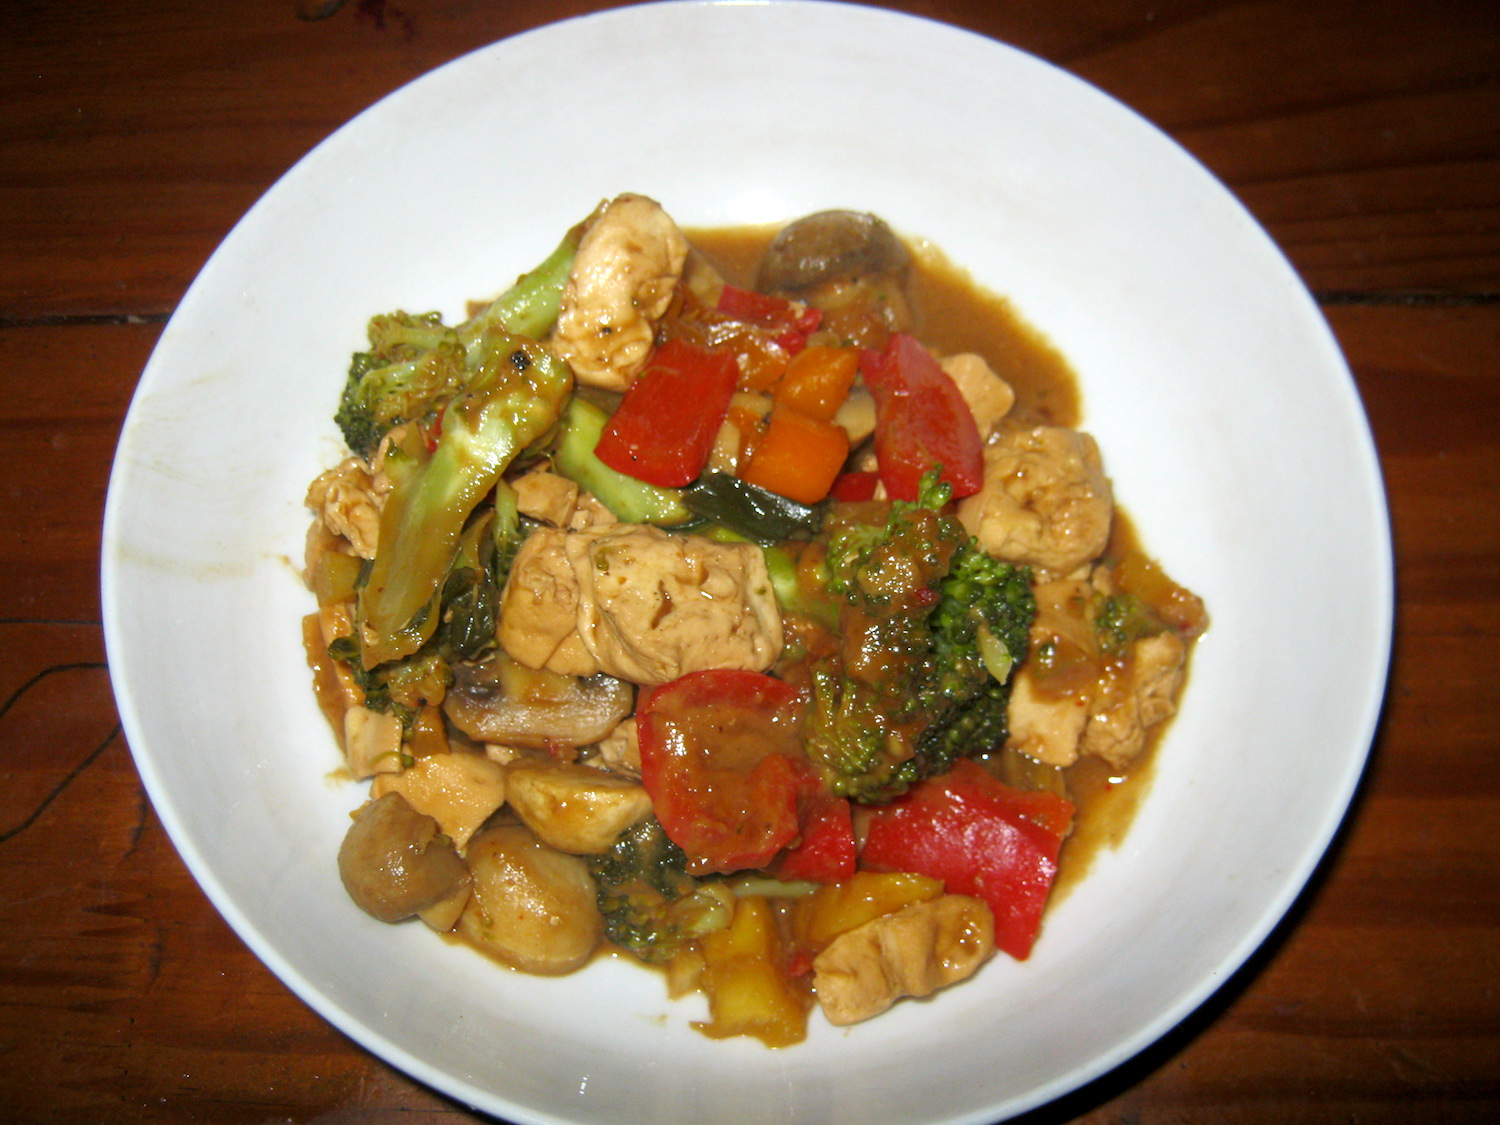 Fried Tofu and Veggies in peanut and pineapple sauce